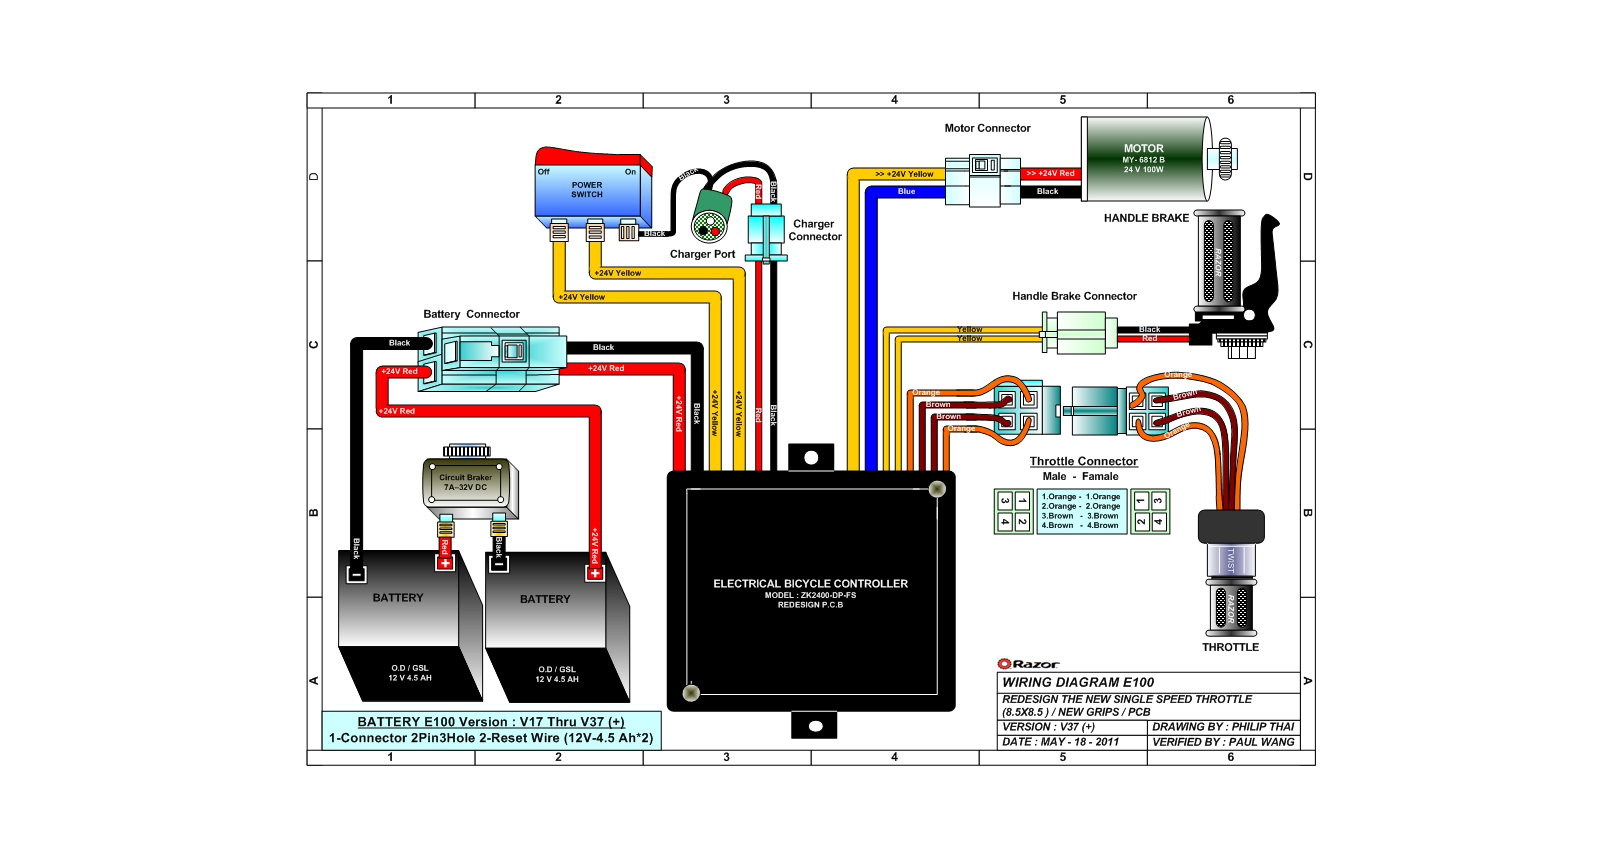 ... E100 (versions 37+) Wiring Diagram ...